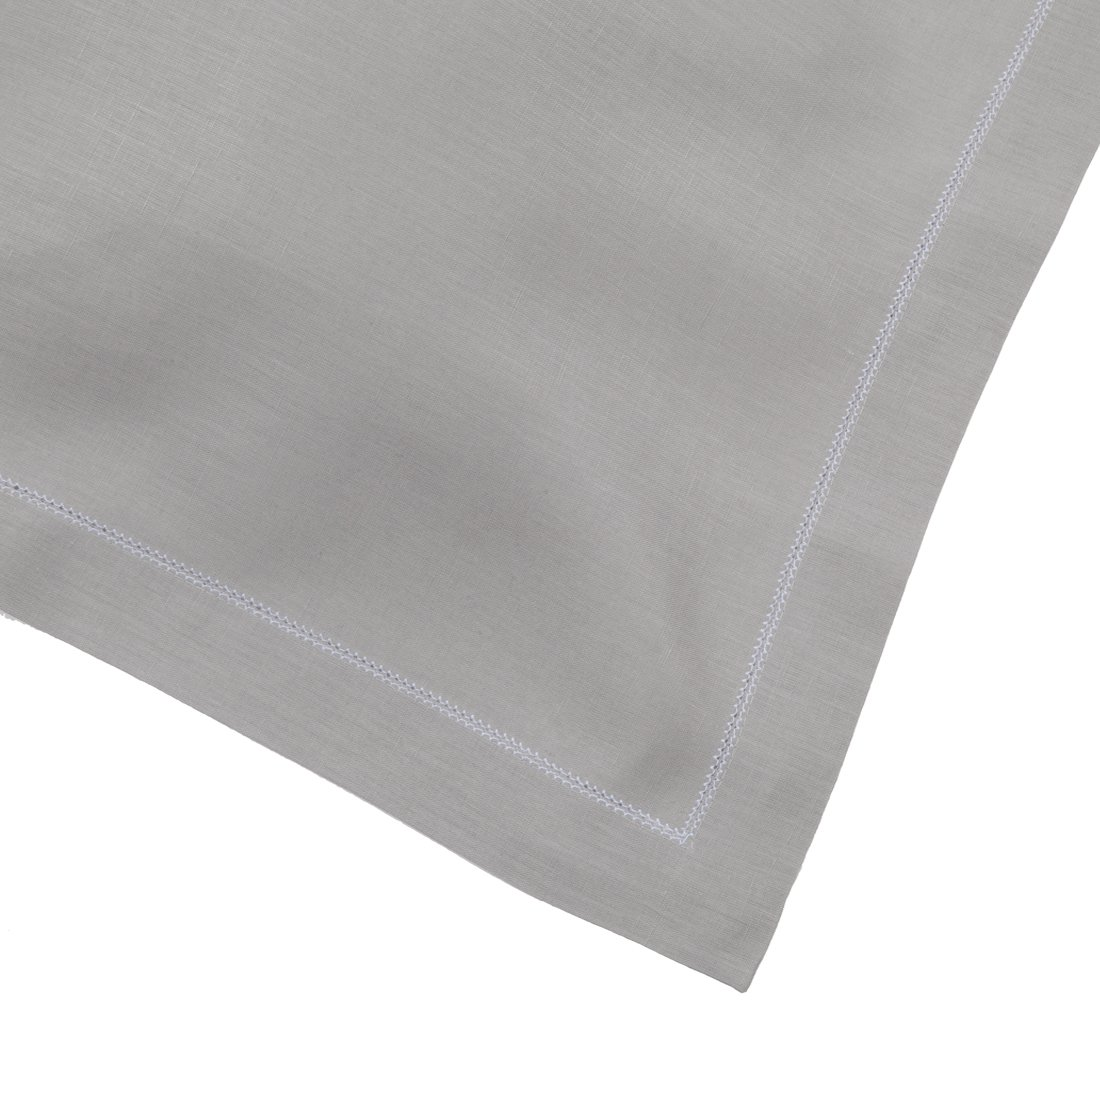 Silver Grey Linen Napkin With Contrast White Hemstitch (Set of Six)